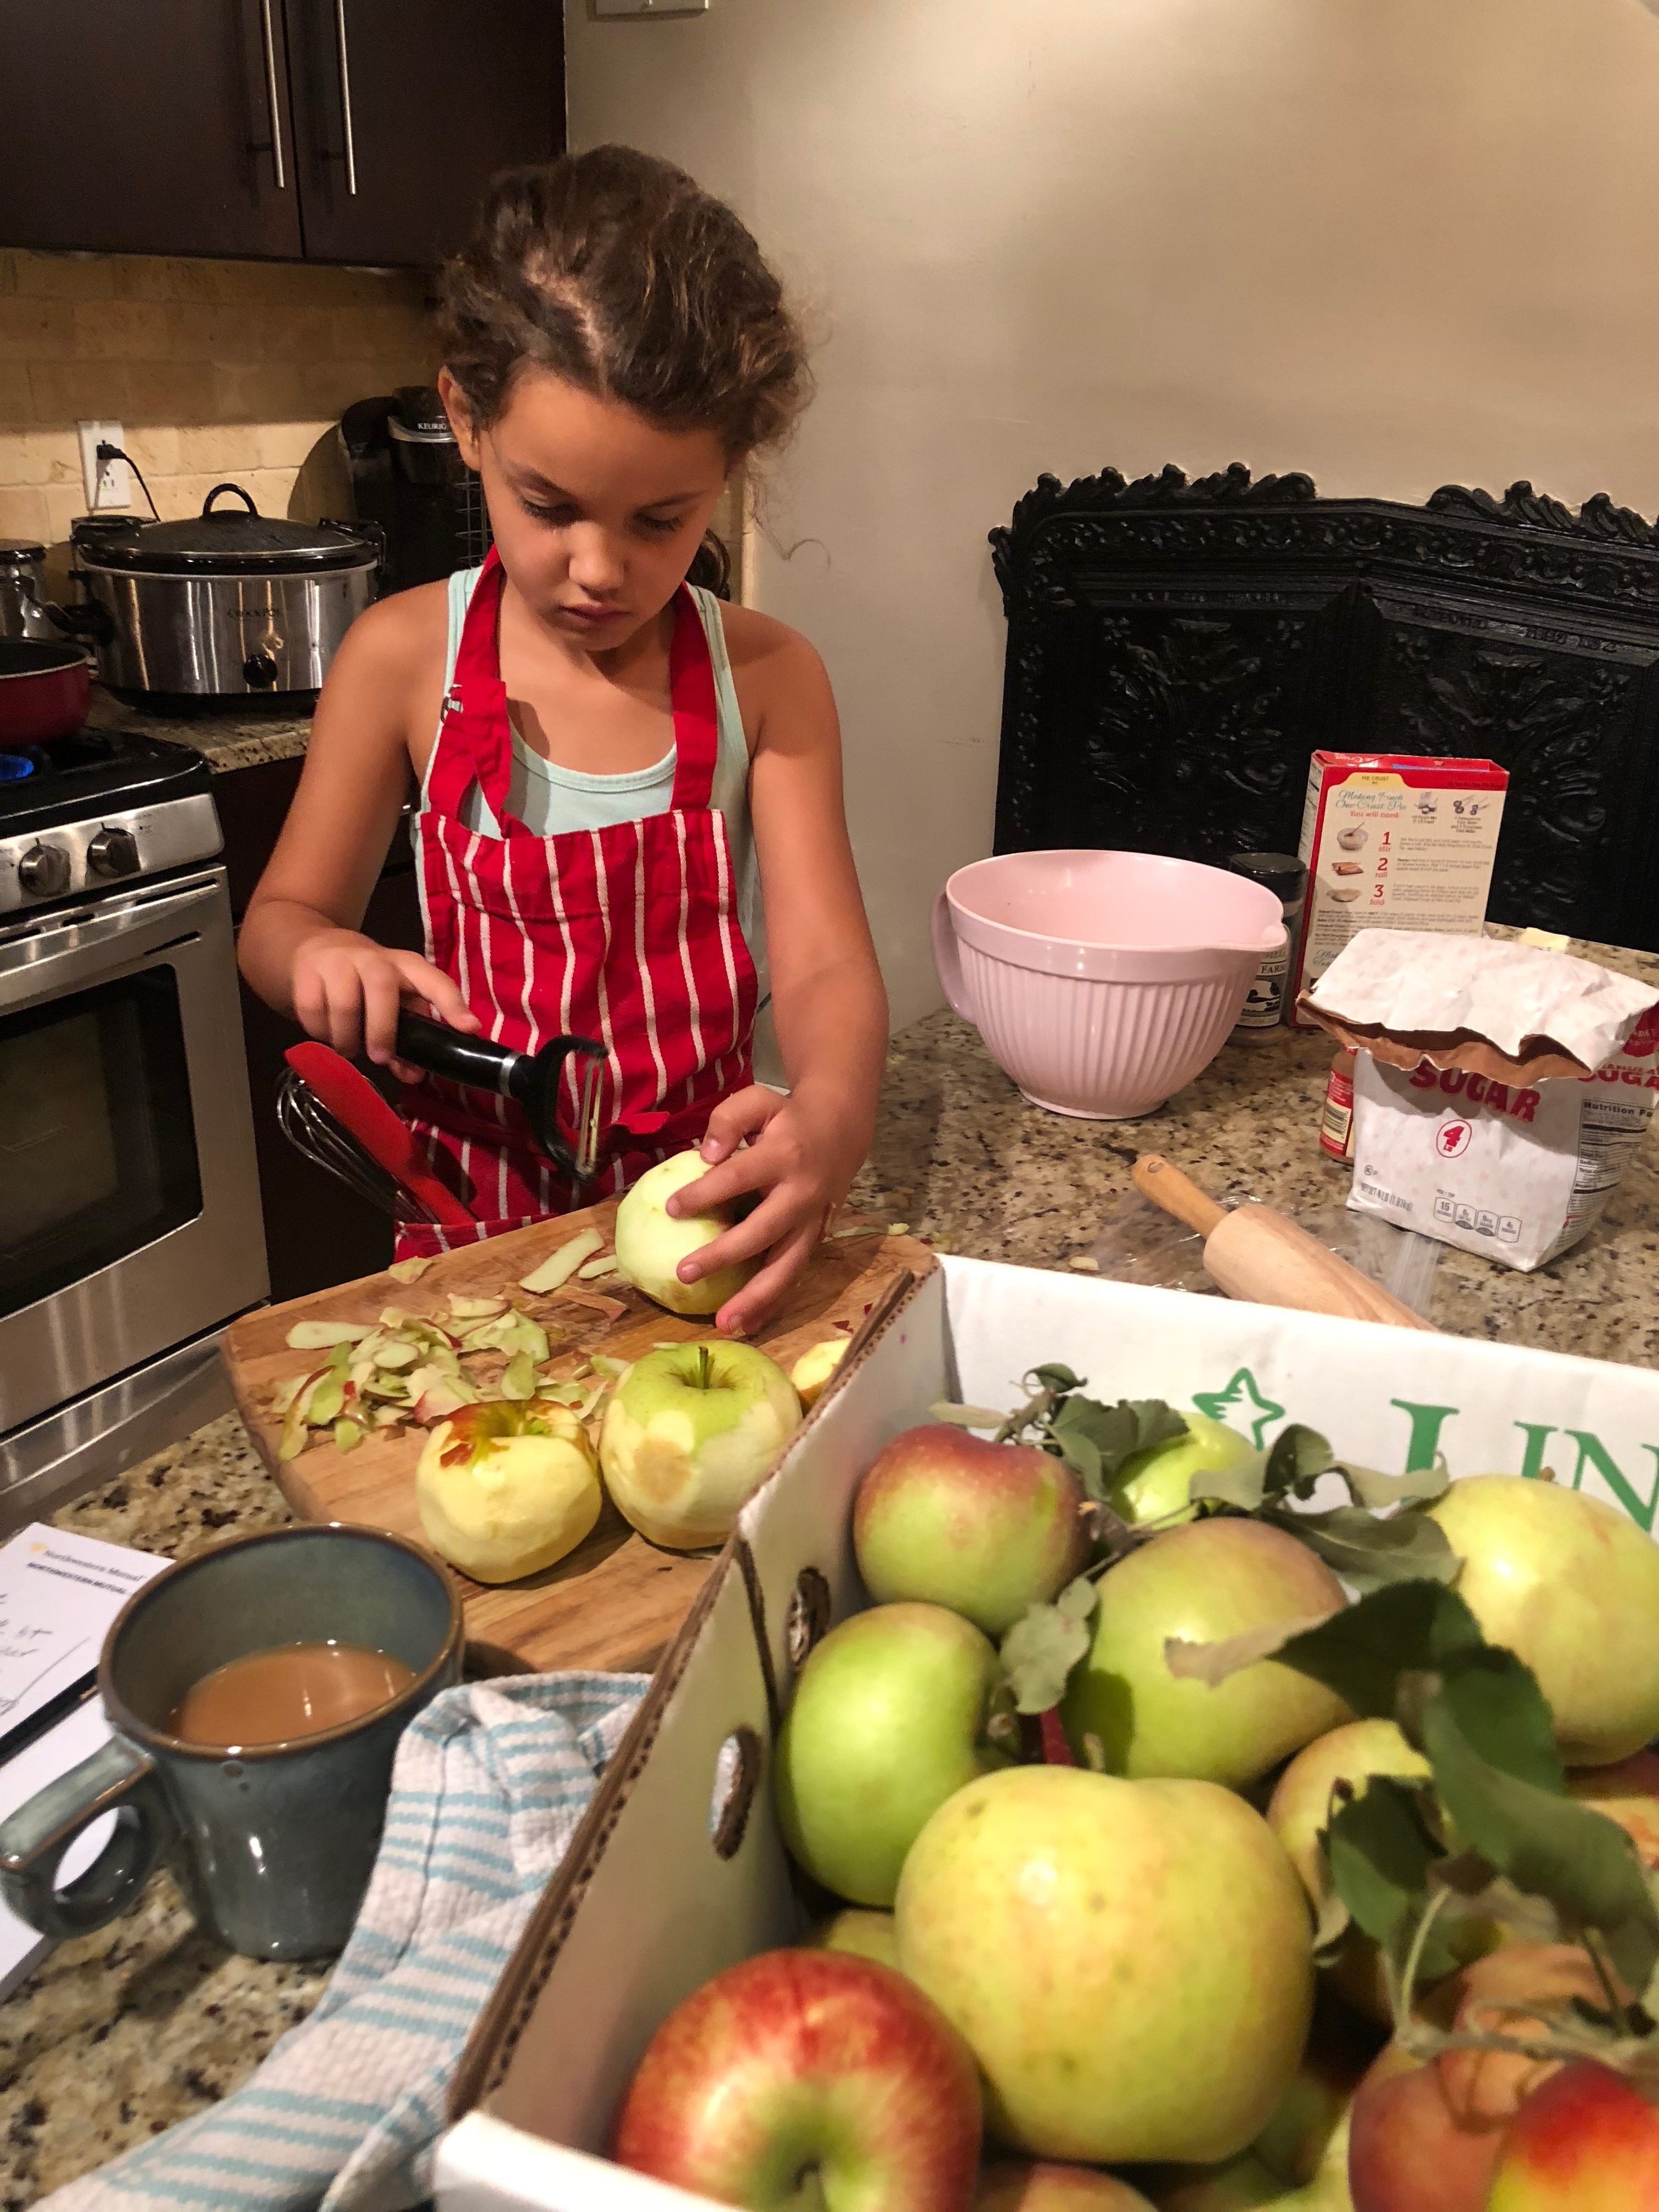 A little girl in a red apron is peeling apples